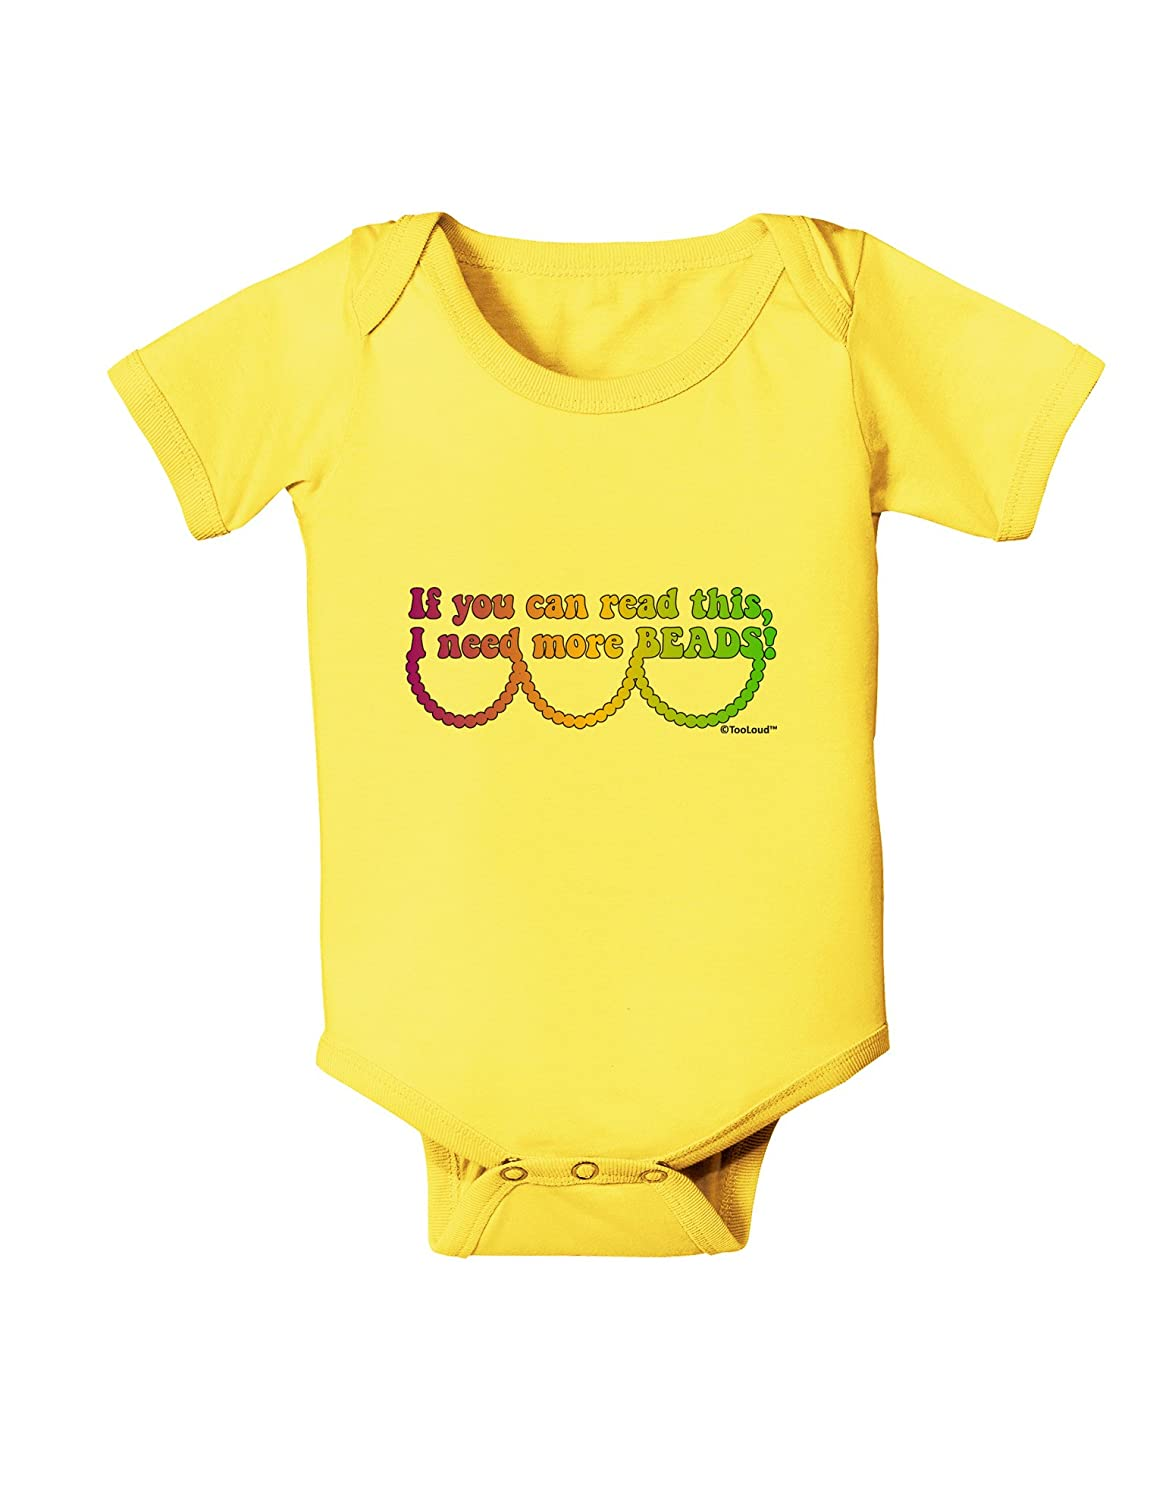 Mardi Gras Baby Romper Bodysuit TooLoud If You Can Read This I Need More Beads